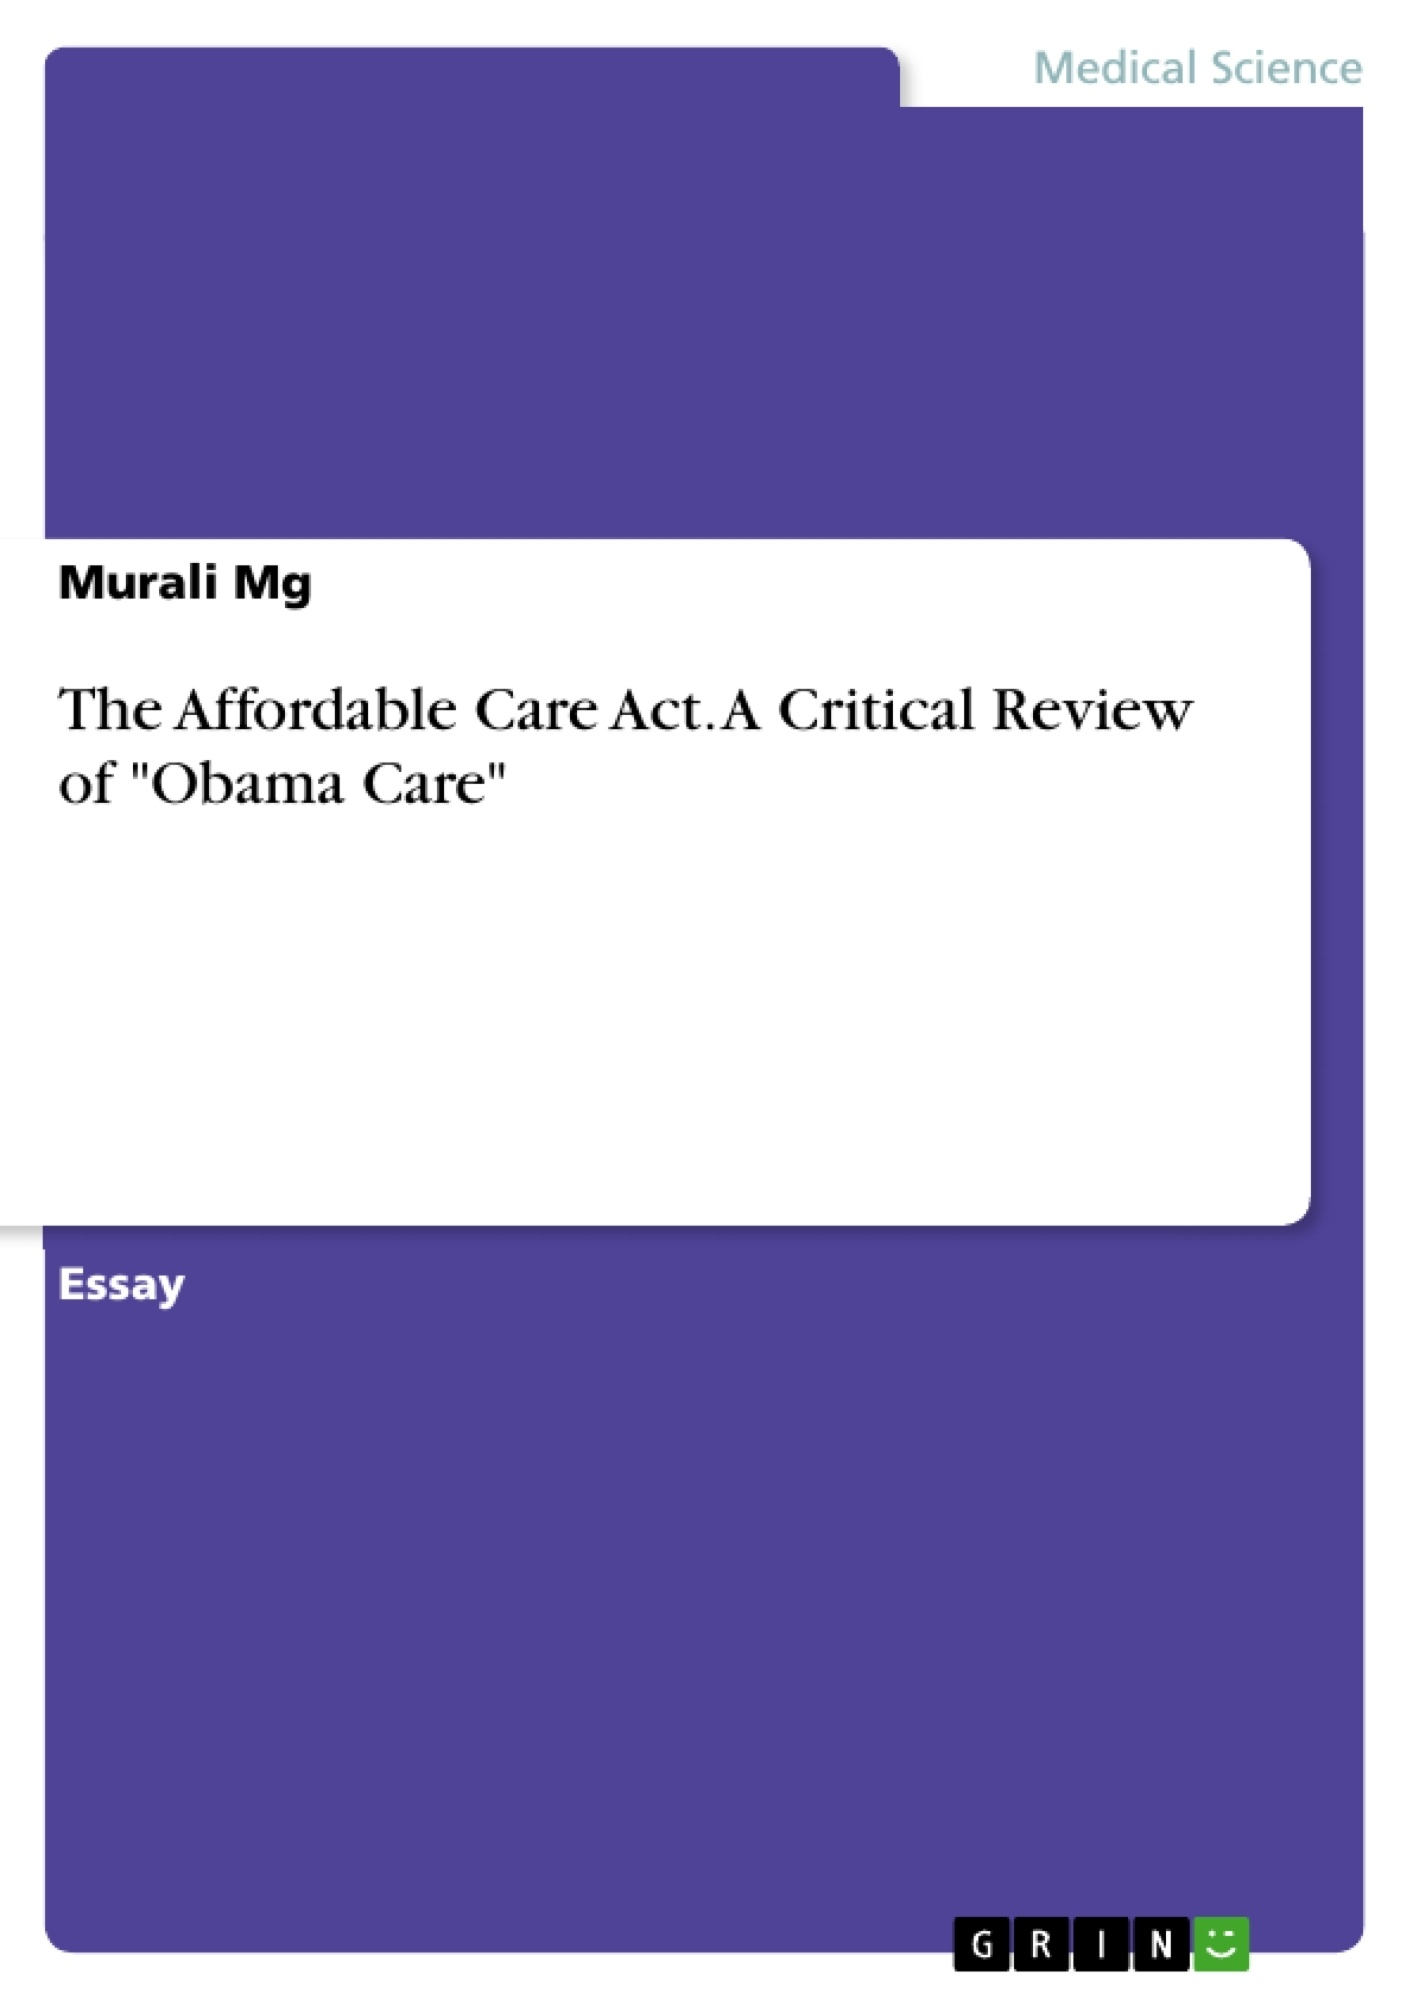 Cause and effect essay on health insurance